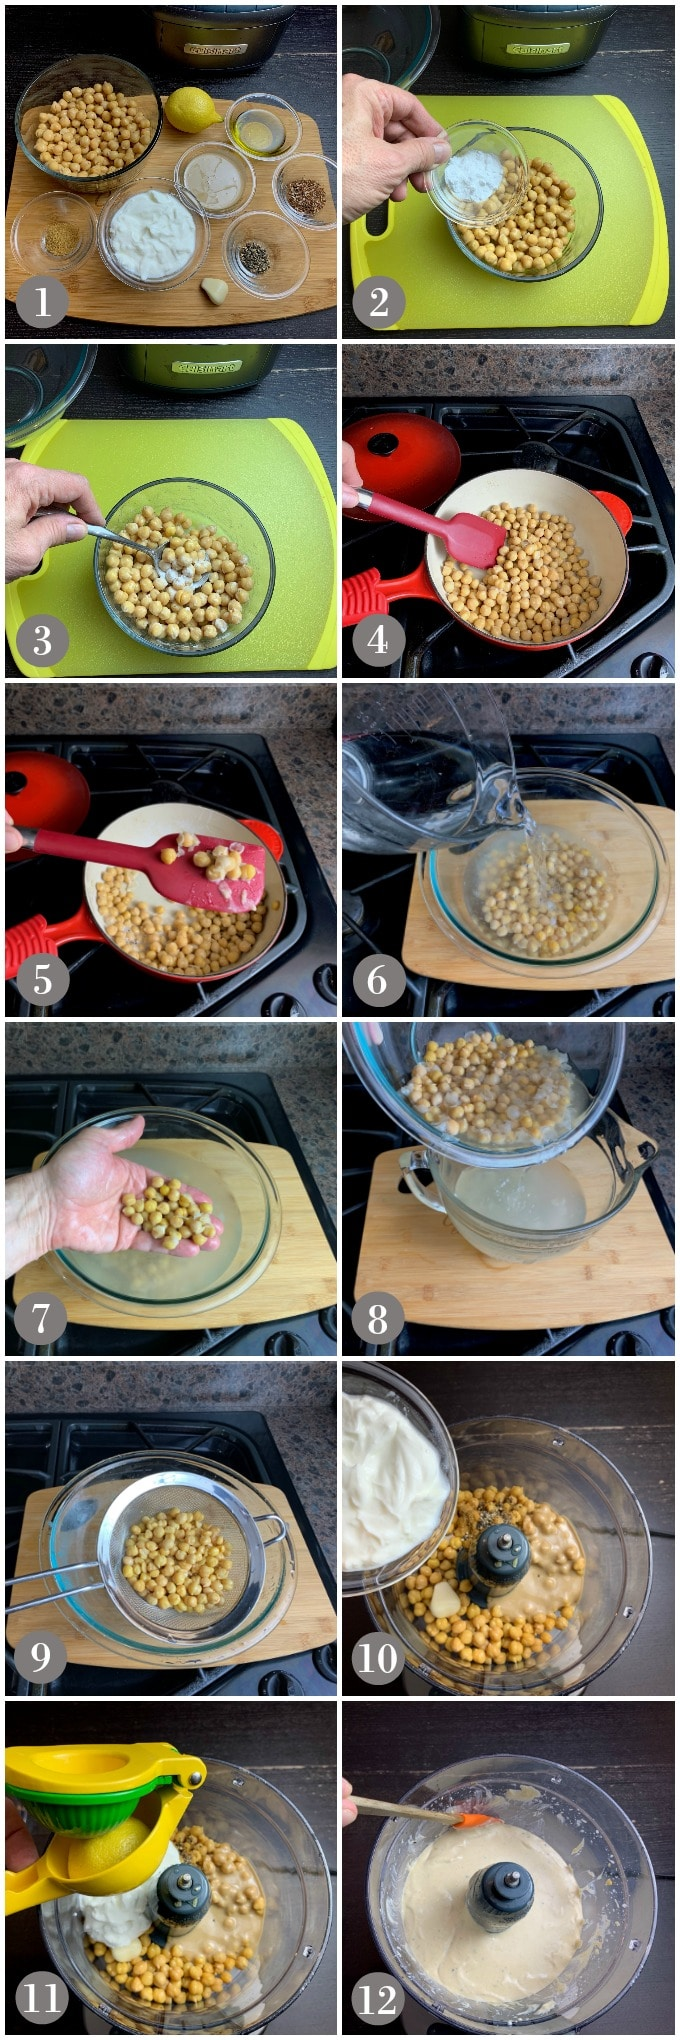 A collage of photos showing steps to make hummus in a food processor.